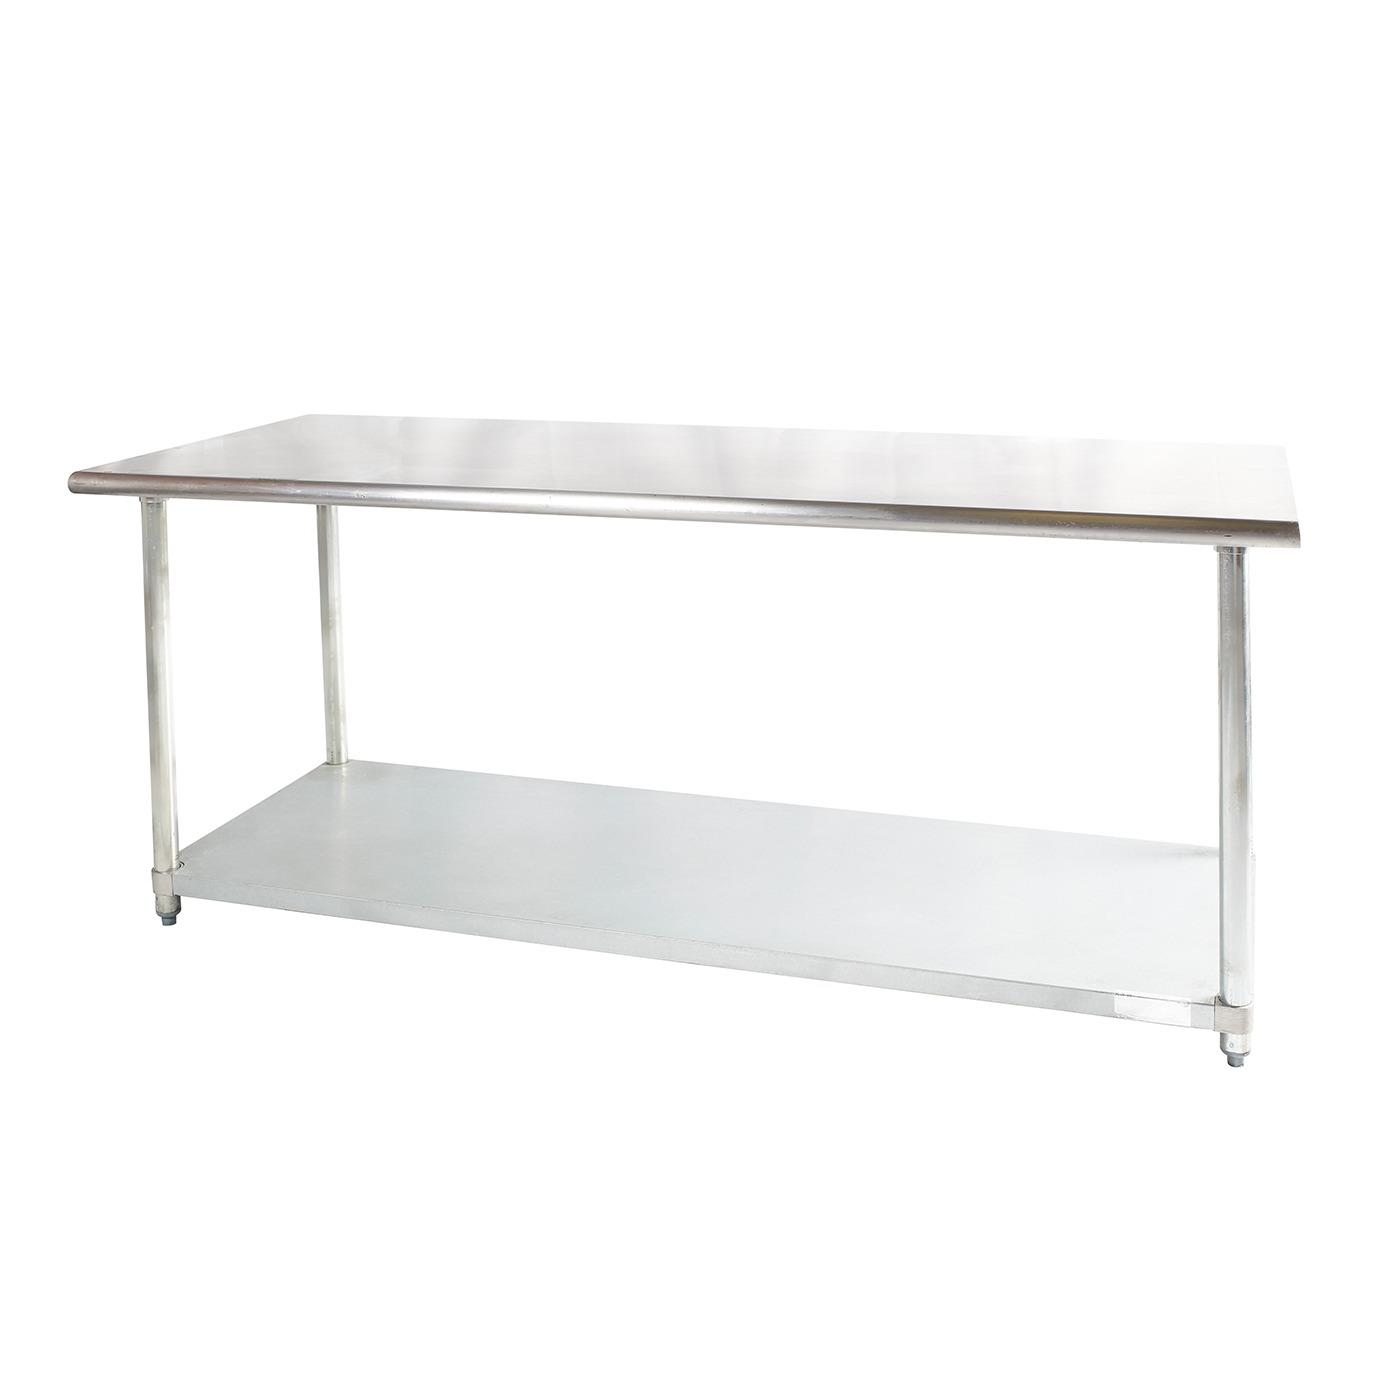 Rectangle Stainless Steel Table - Stainless Steel Work Table without Backsplash